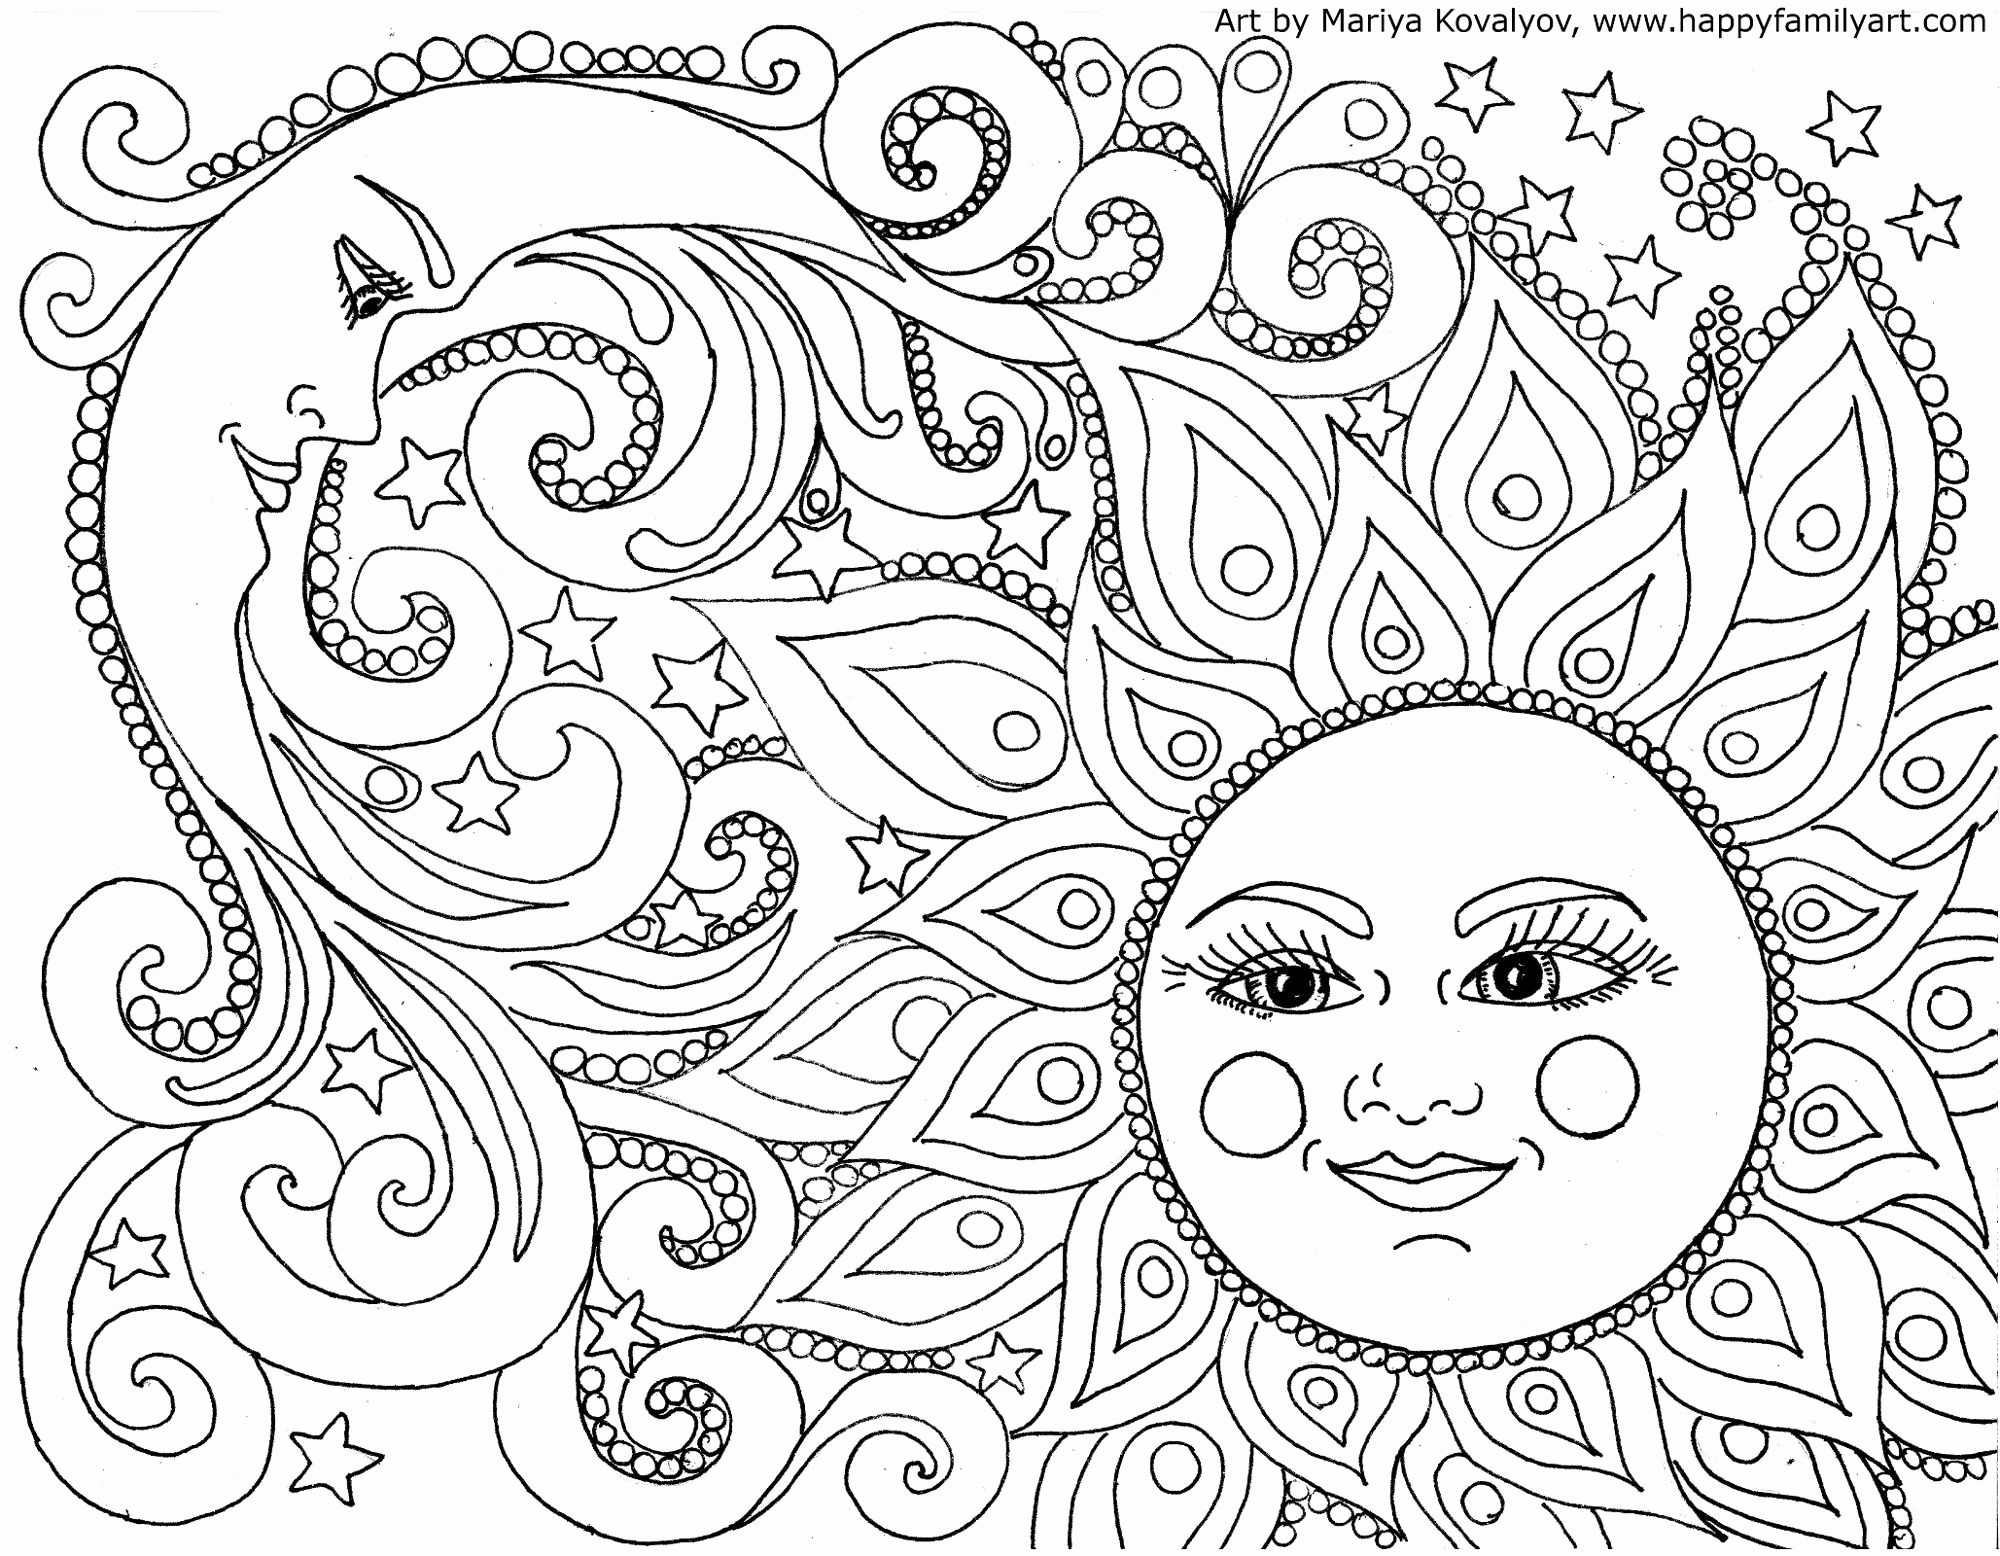 Graffiti Coloring Pages  to Print 7m - Free For kids